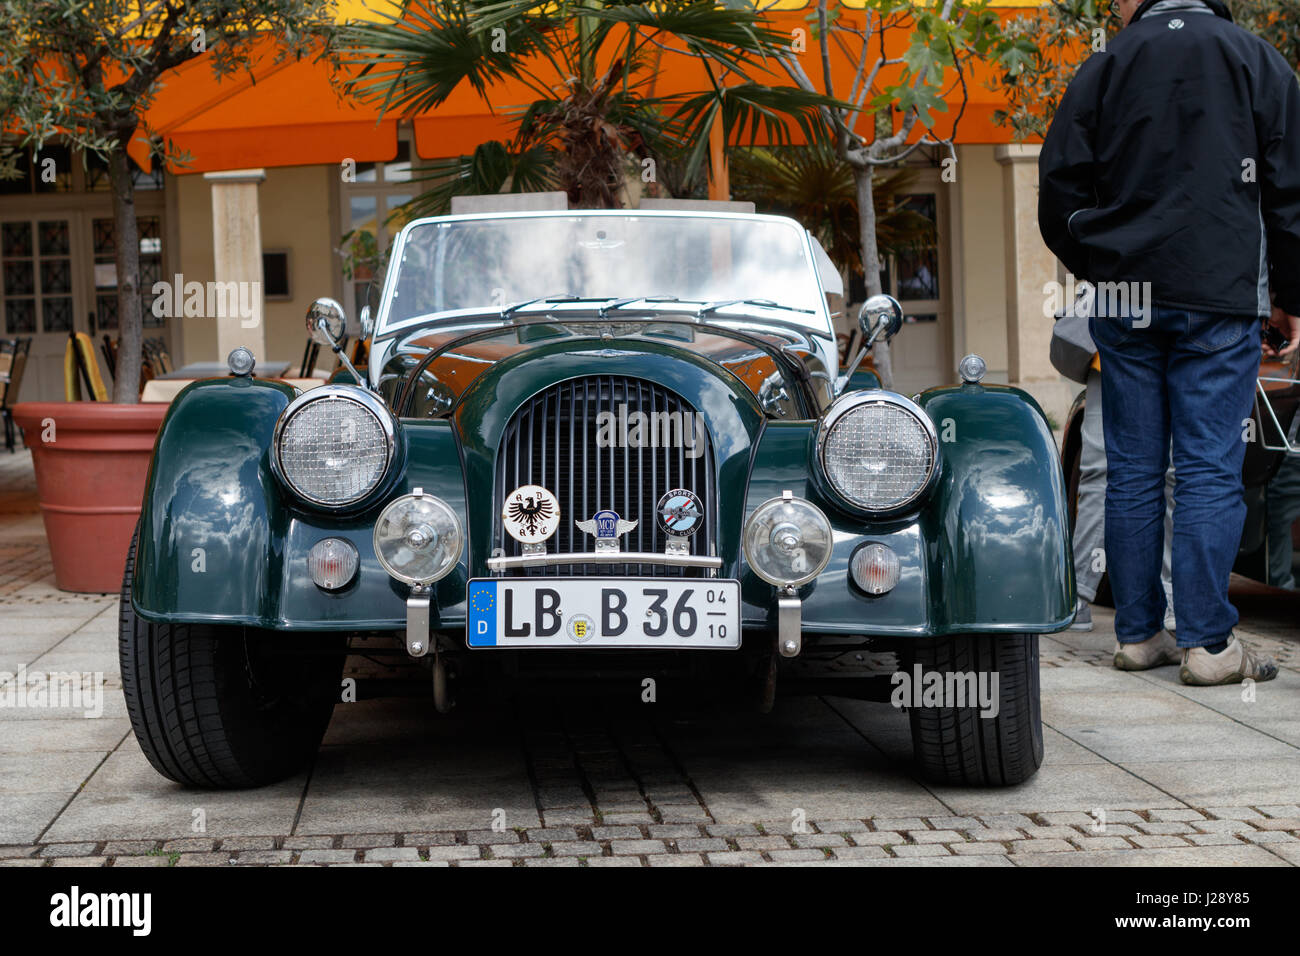 LUDWIGSBURG, GERMANY - APRIL 23, 2017: Morgan oldtimer car at the eMotionen event on April 23, 2017 in Ludwigsburg, - Stock Image